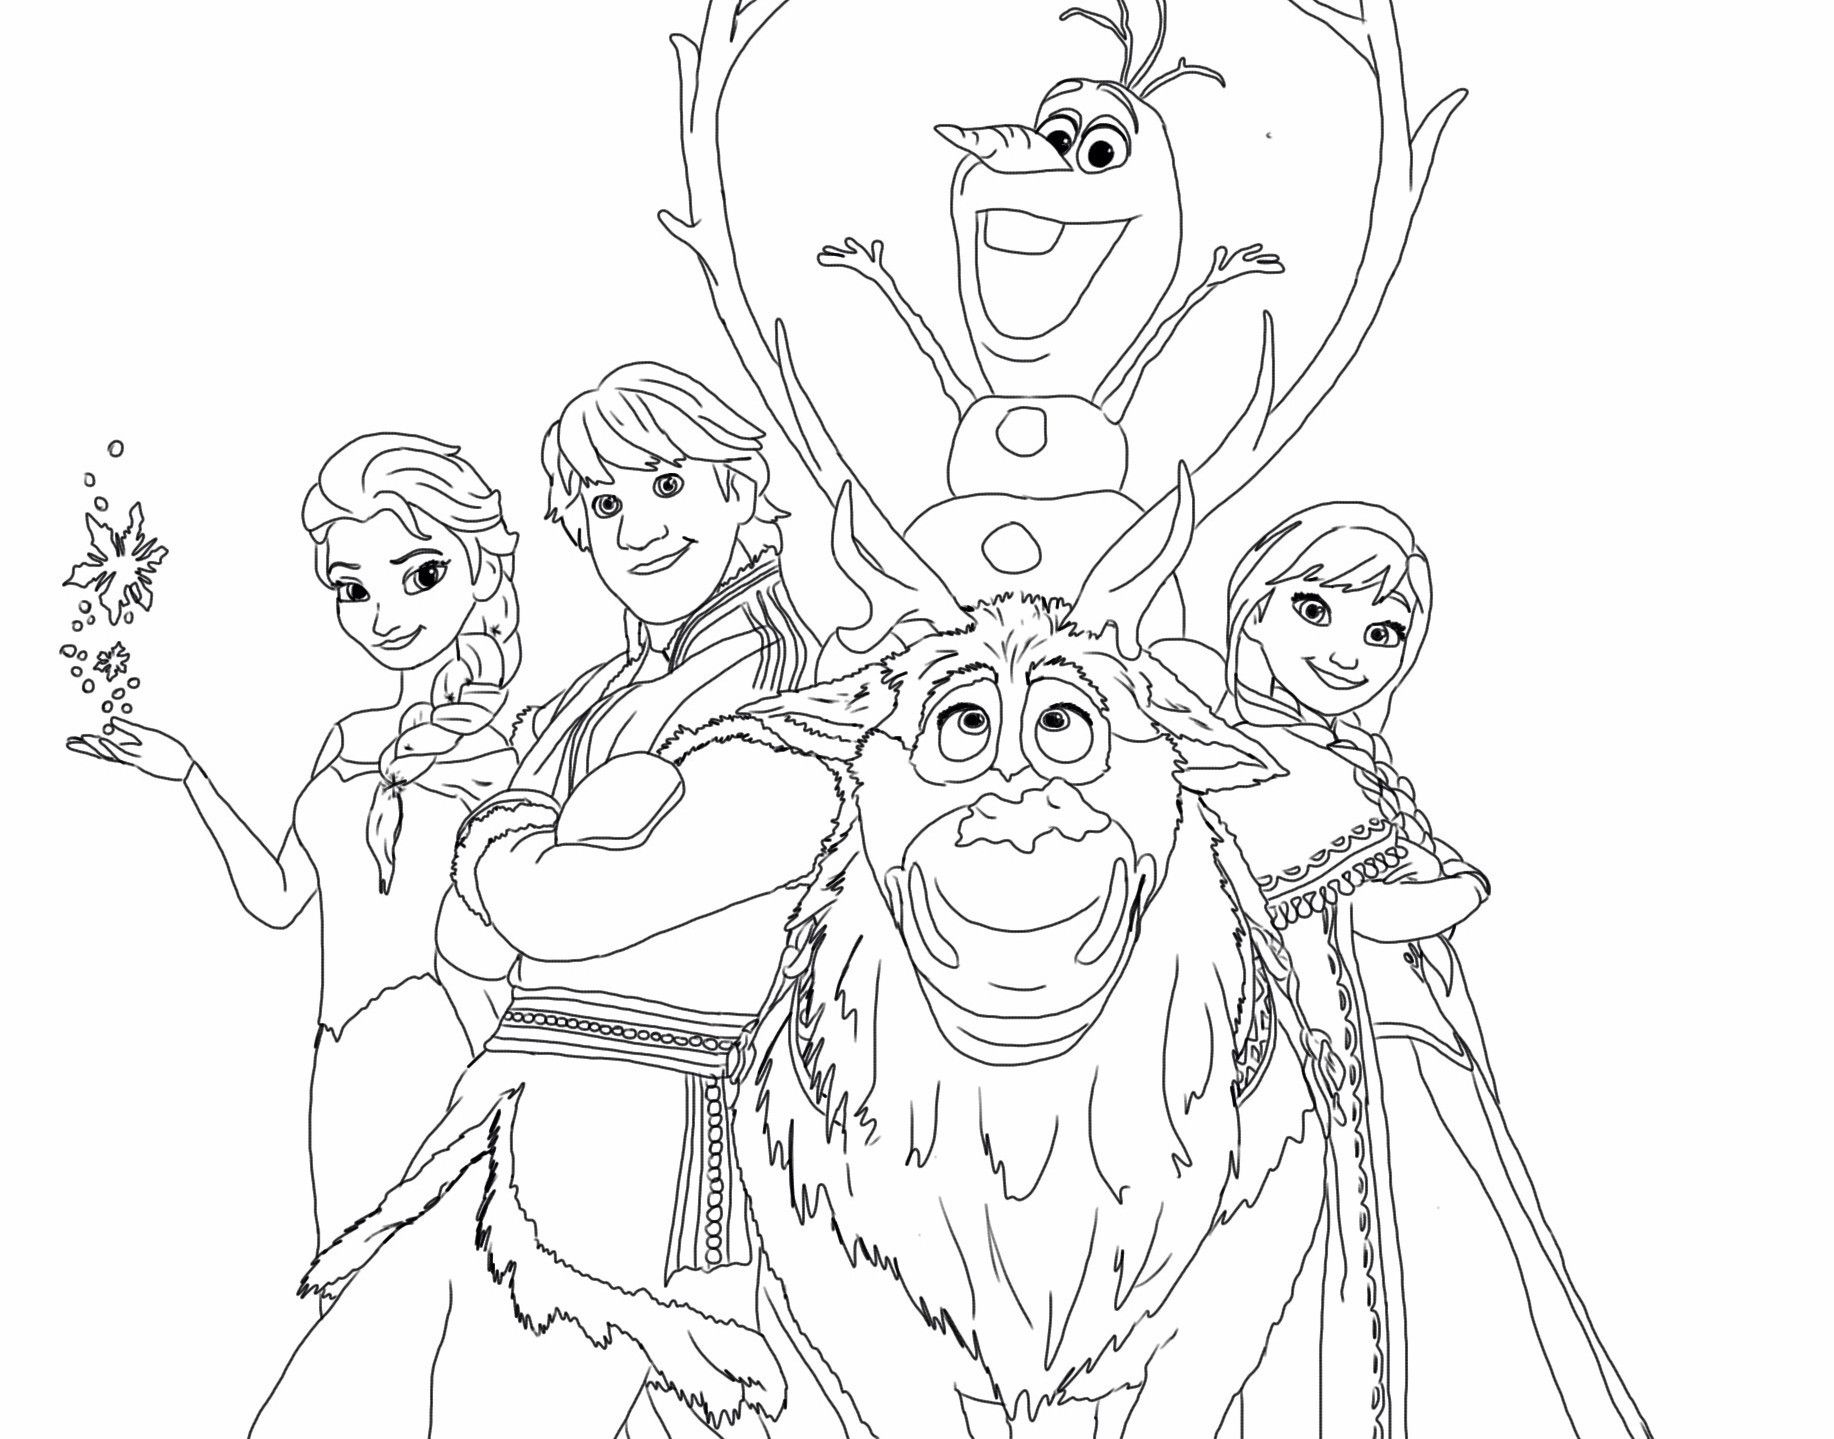 Frozen Coloring Pages Free Printable Printables Frabbi Me Elsa Coloring Pages Frozen Coloring Pages Princess Coloring Pages